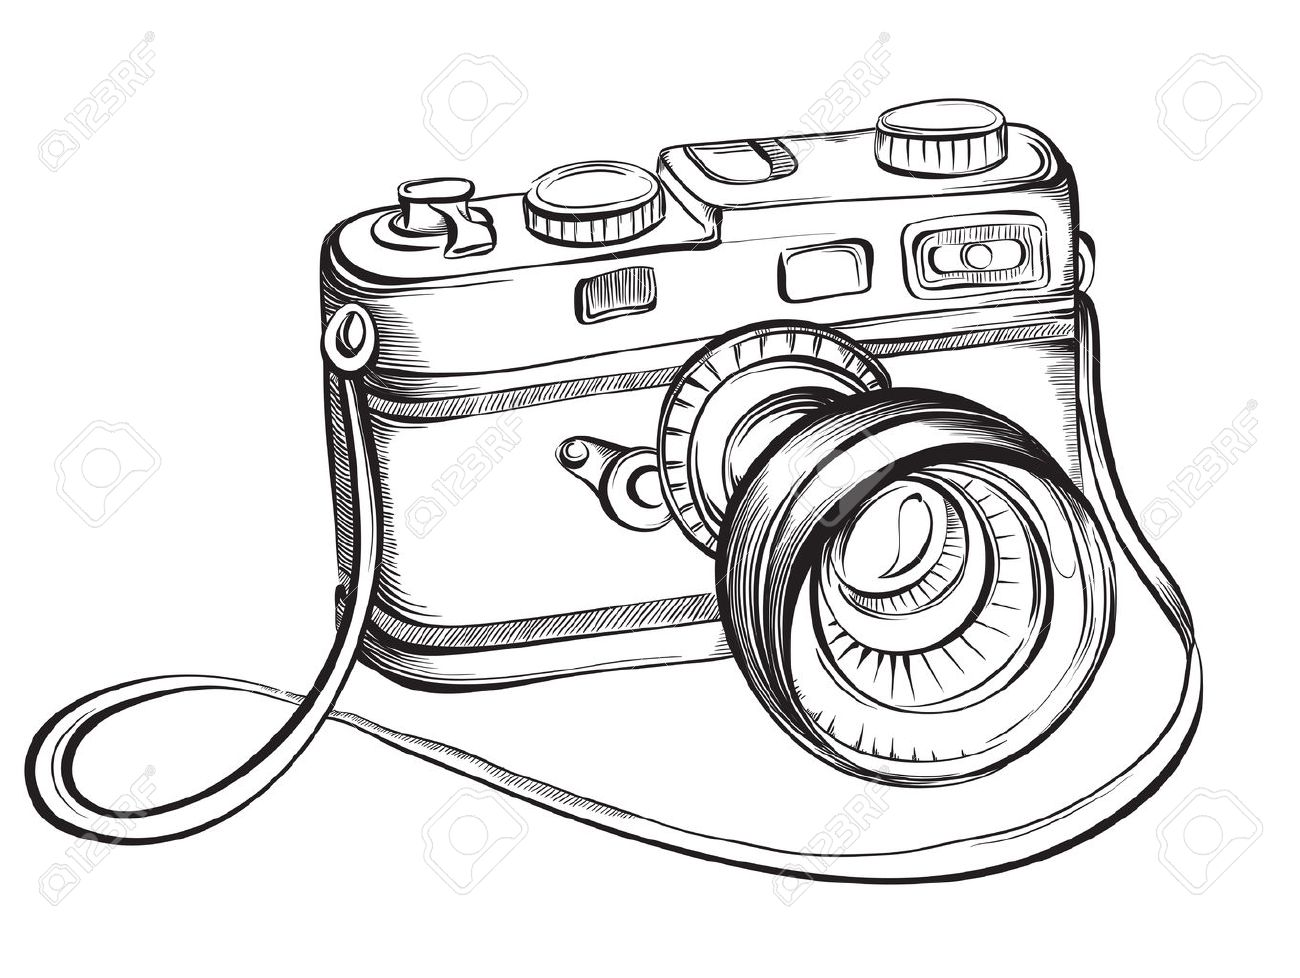 Sketch Vintage Retro Photo Camera Vector Hand Drawn Illustration Stock